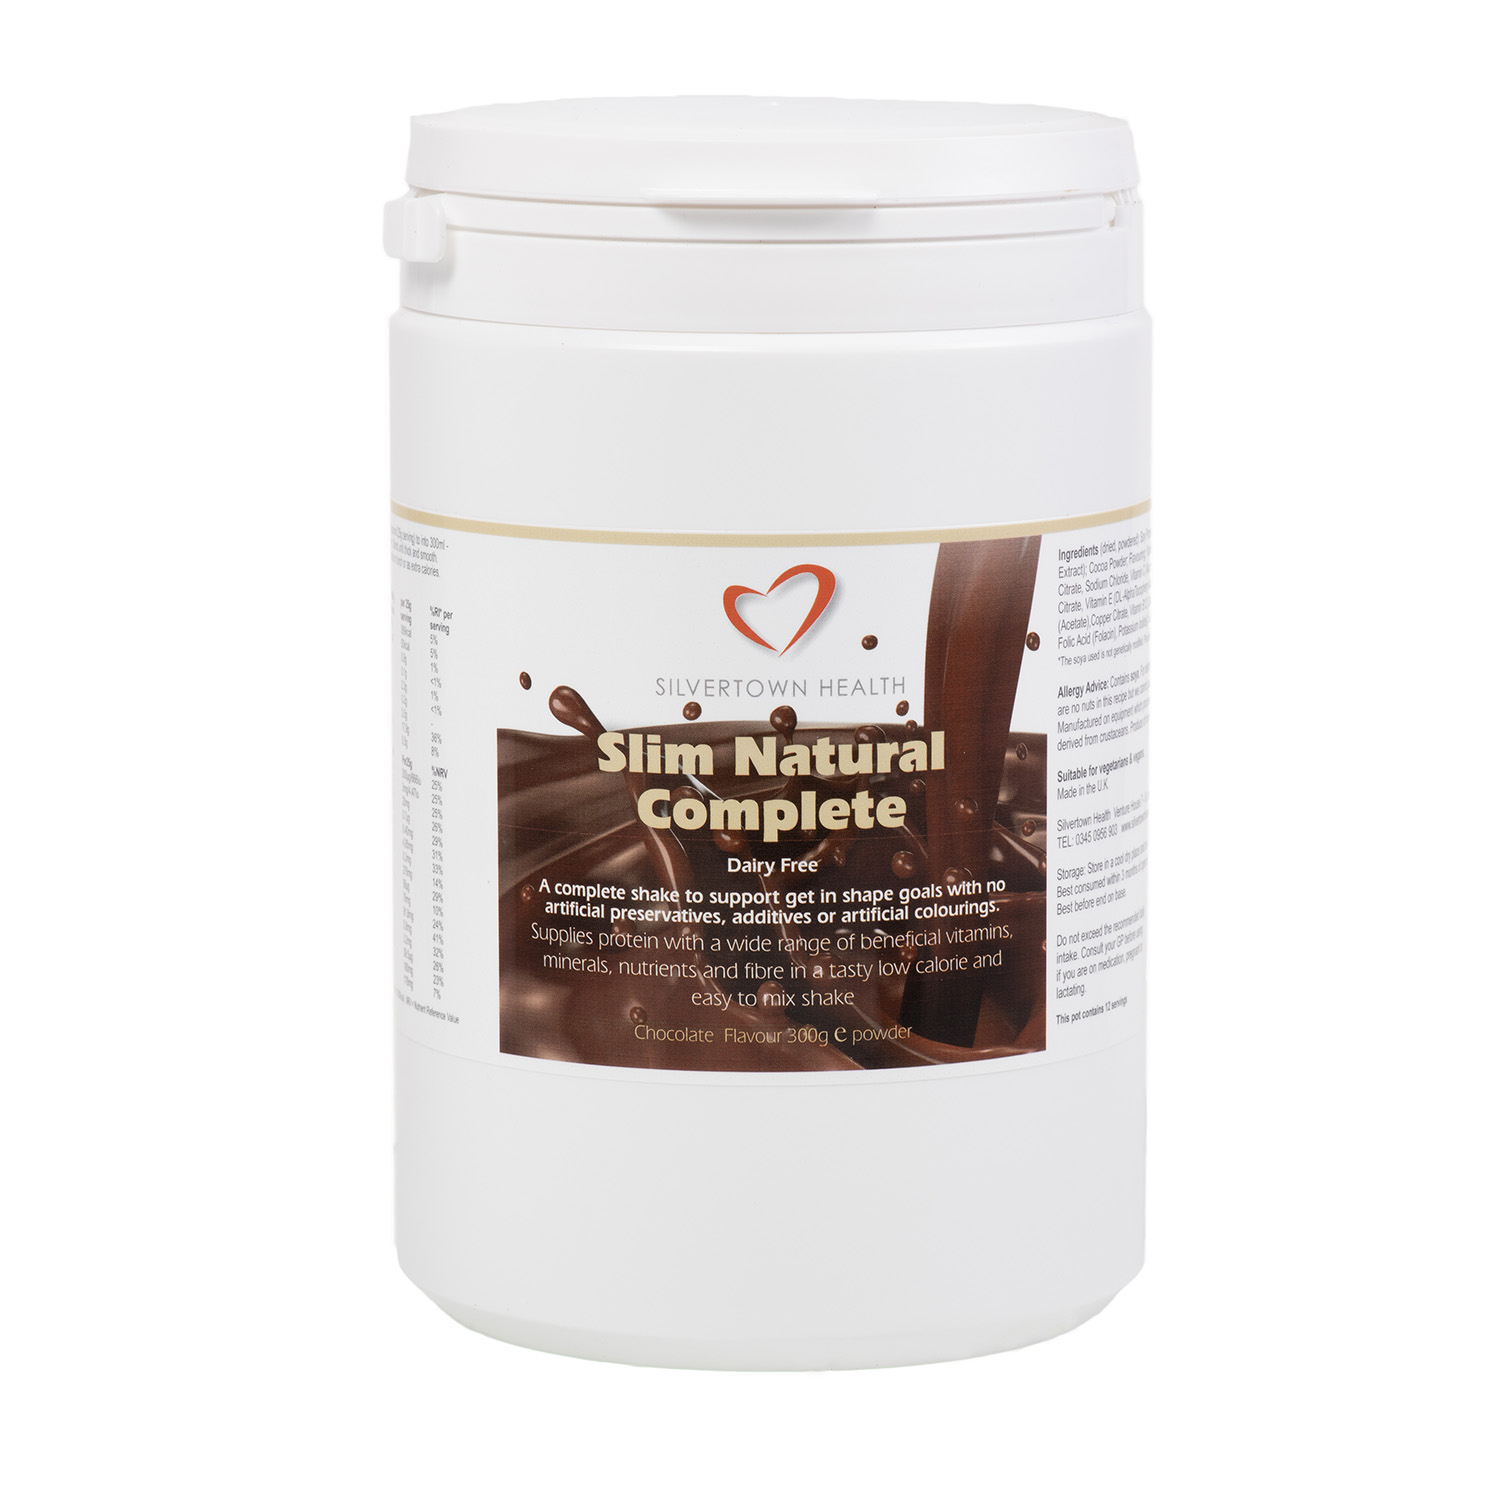 Silm Natural Complete - Chocolate - 300g